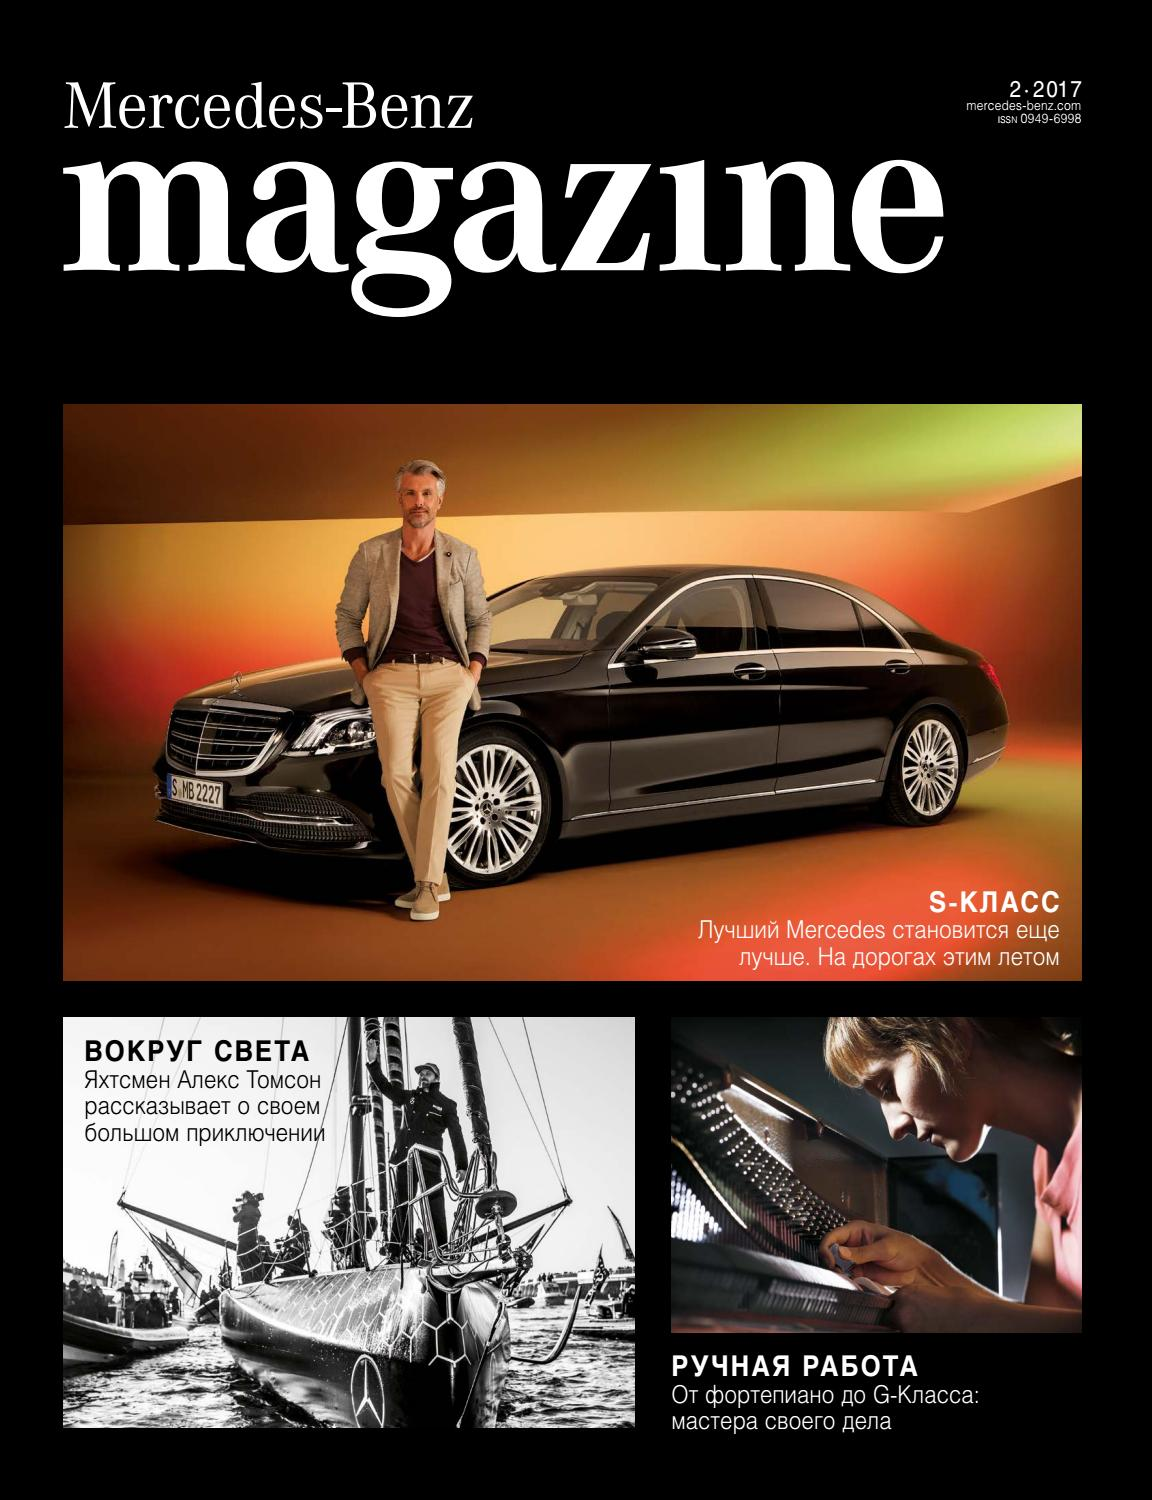 mercedes benz magazine 02 2017 by icom issuu. Black Bedroom Furniture Sets. Home Design Ideas